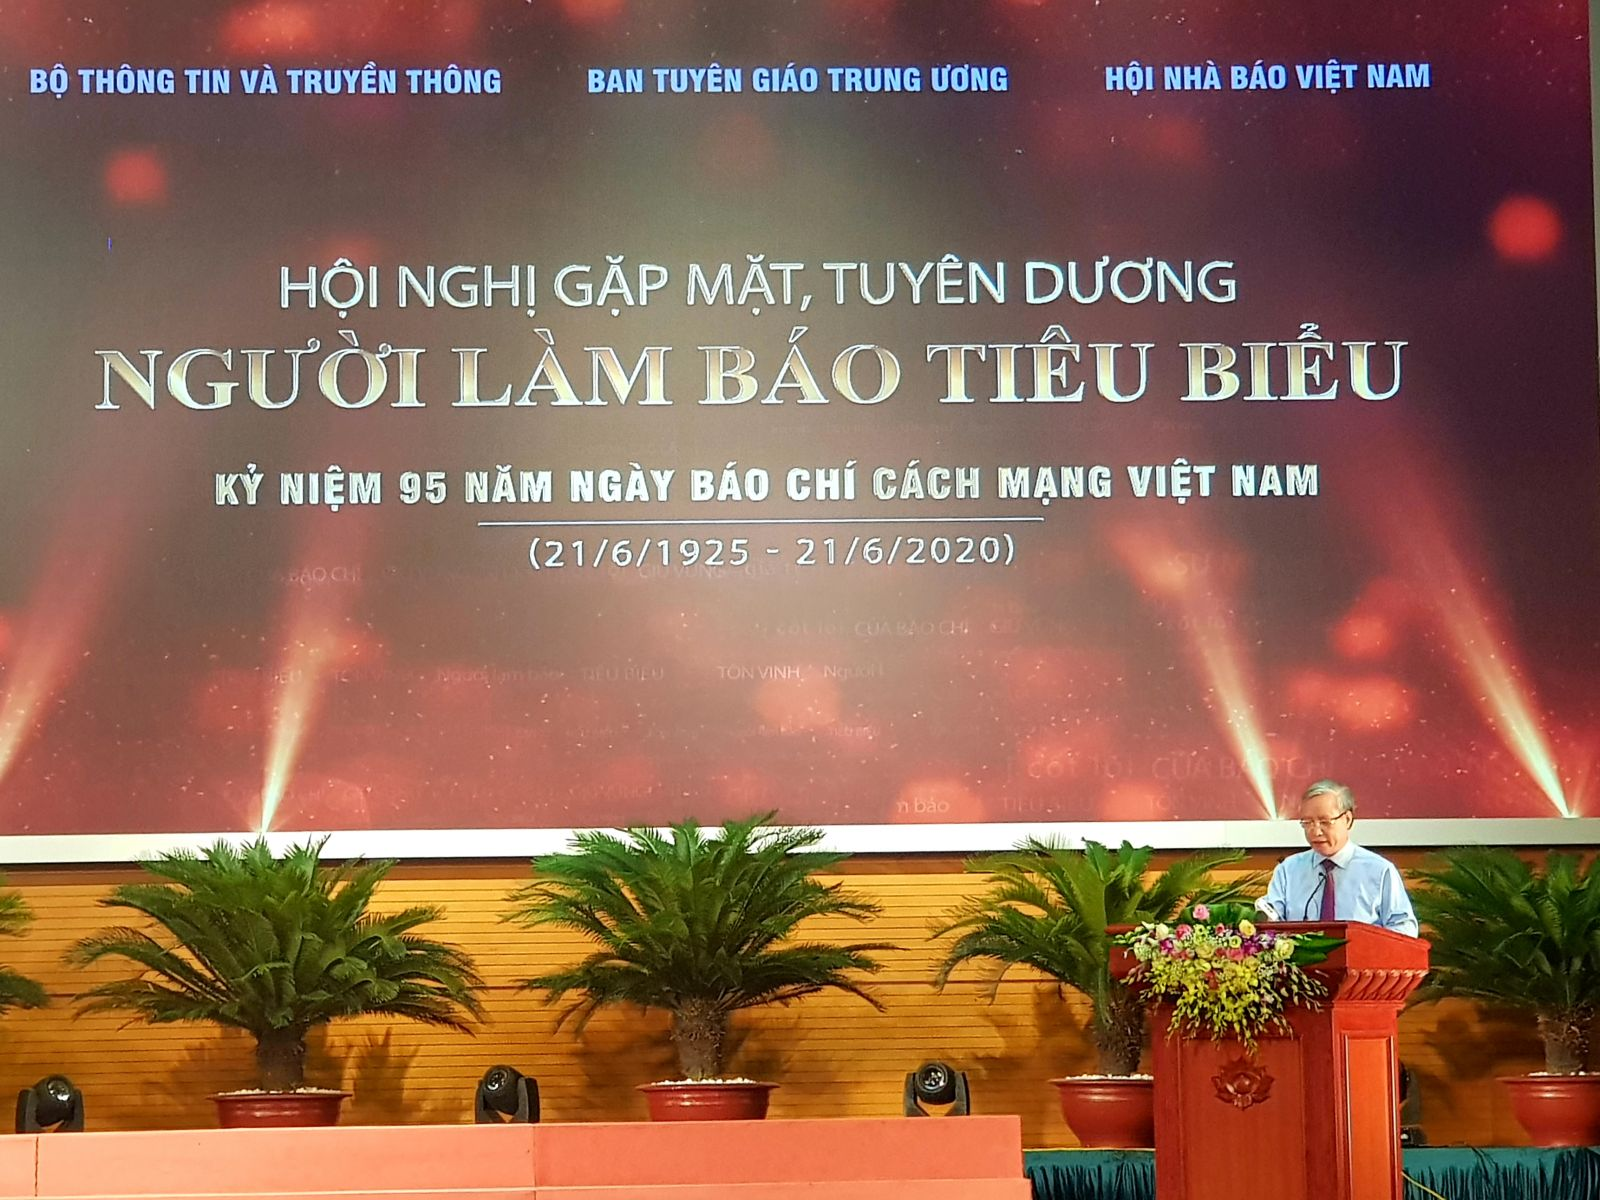 Politburo member, Standing Secretariat - Tran Quoc Vuong speaks at the conference